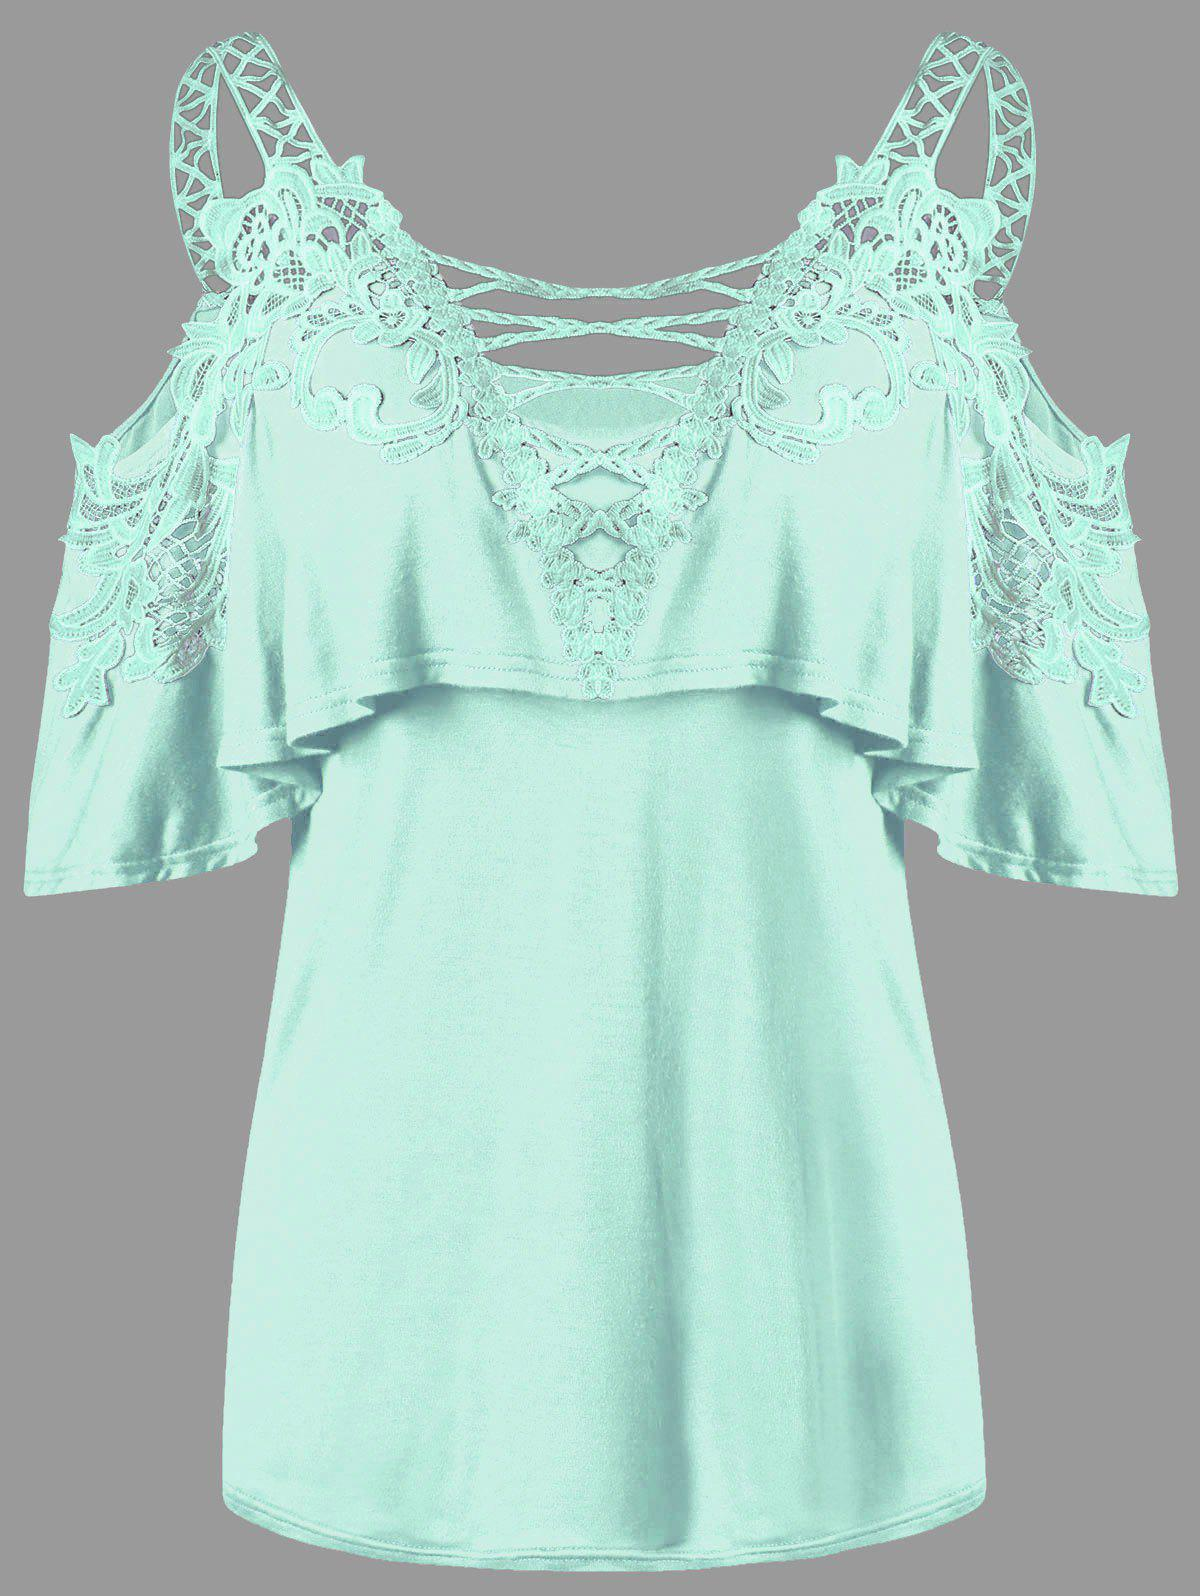 Dew Shoulder Overlay Applique T-shirt - MINT M